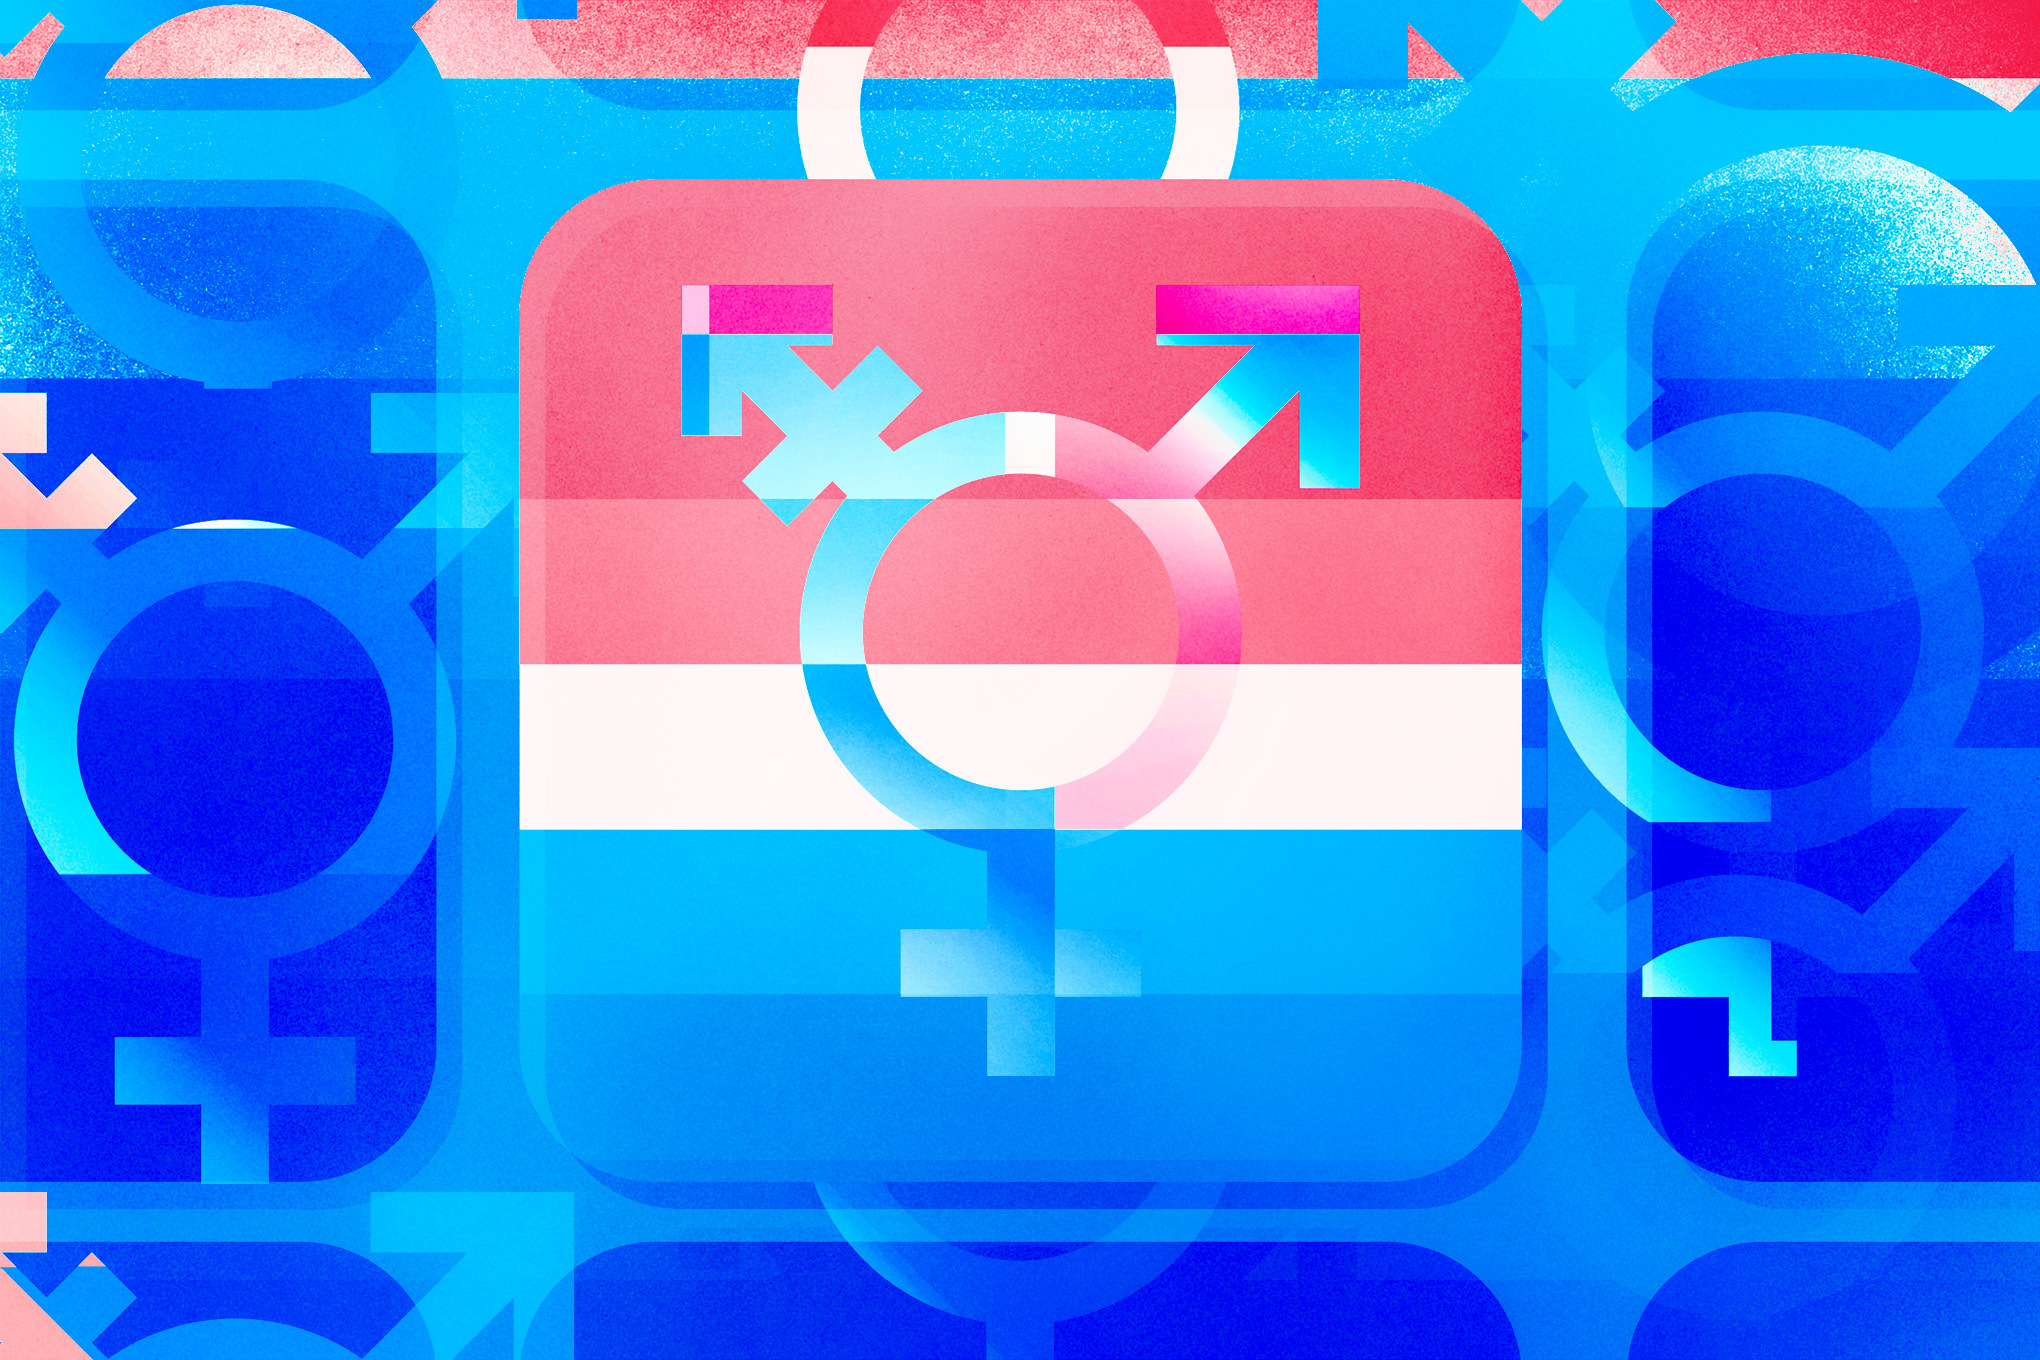 The transgender symbol in a square that looks like an app icon, overlapping with stripes of pink, white, and blue. Glitchy iterations of the symbol appear in the blue background.